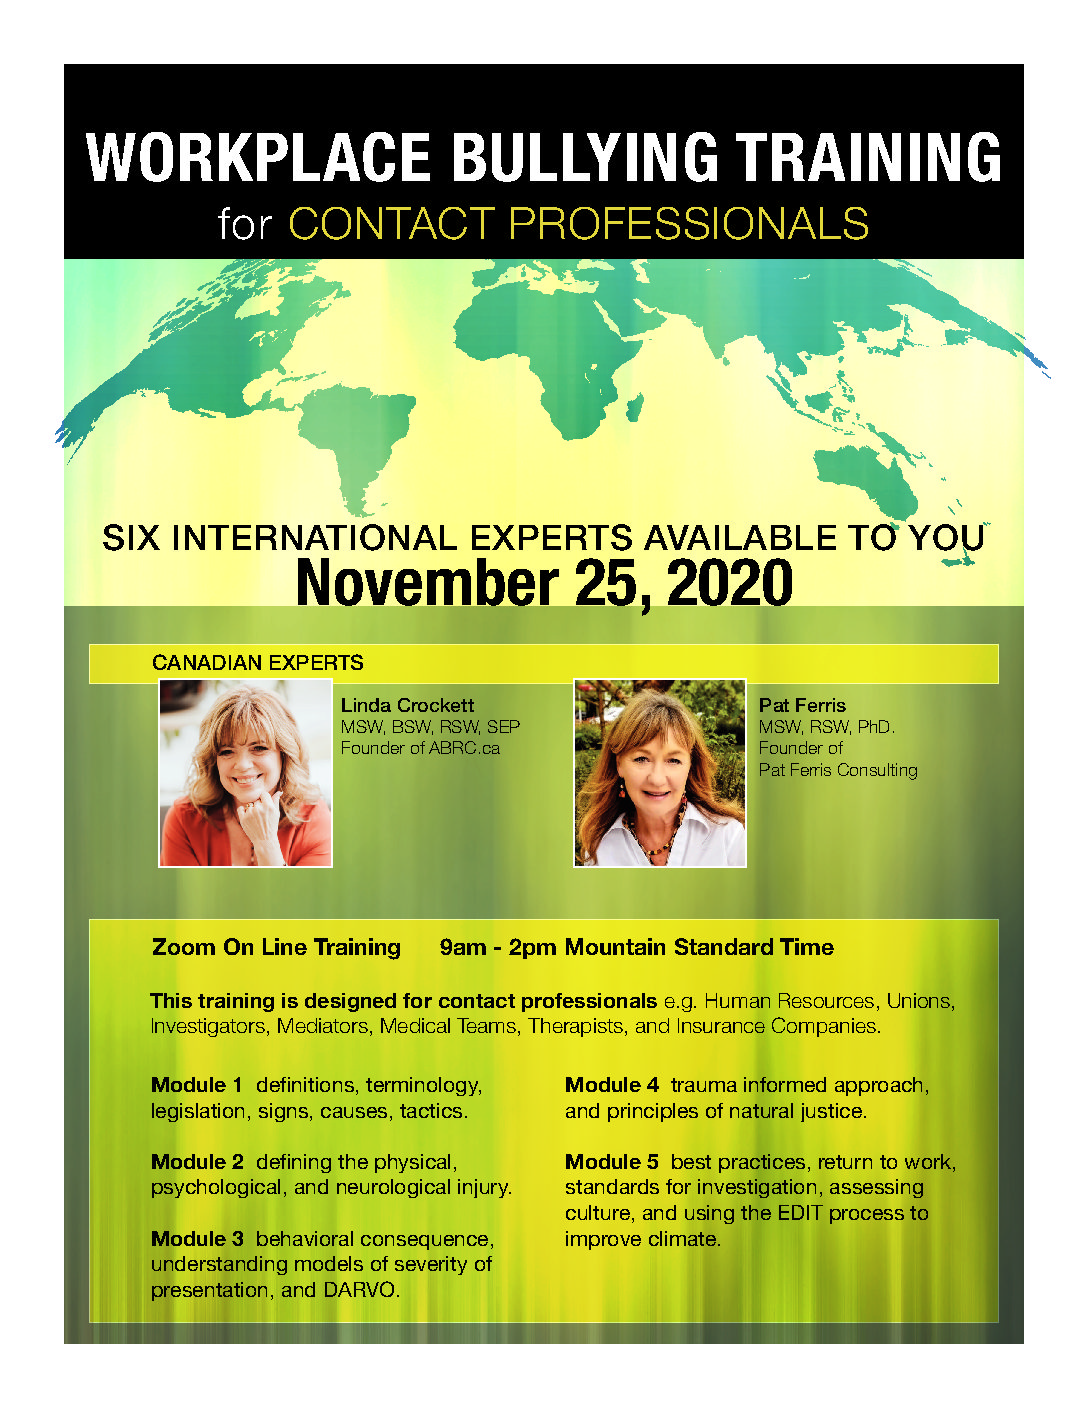 Workplace Bullying Training for Contact Professionals